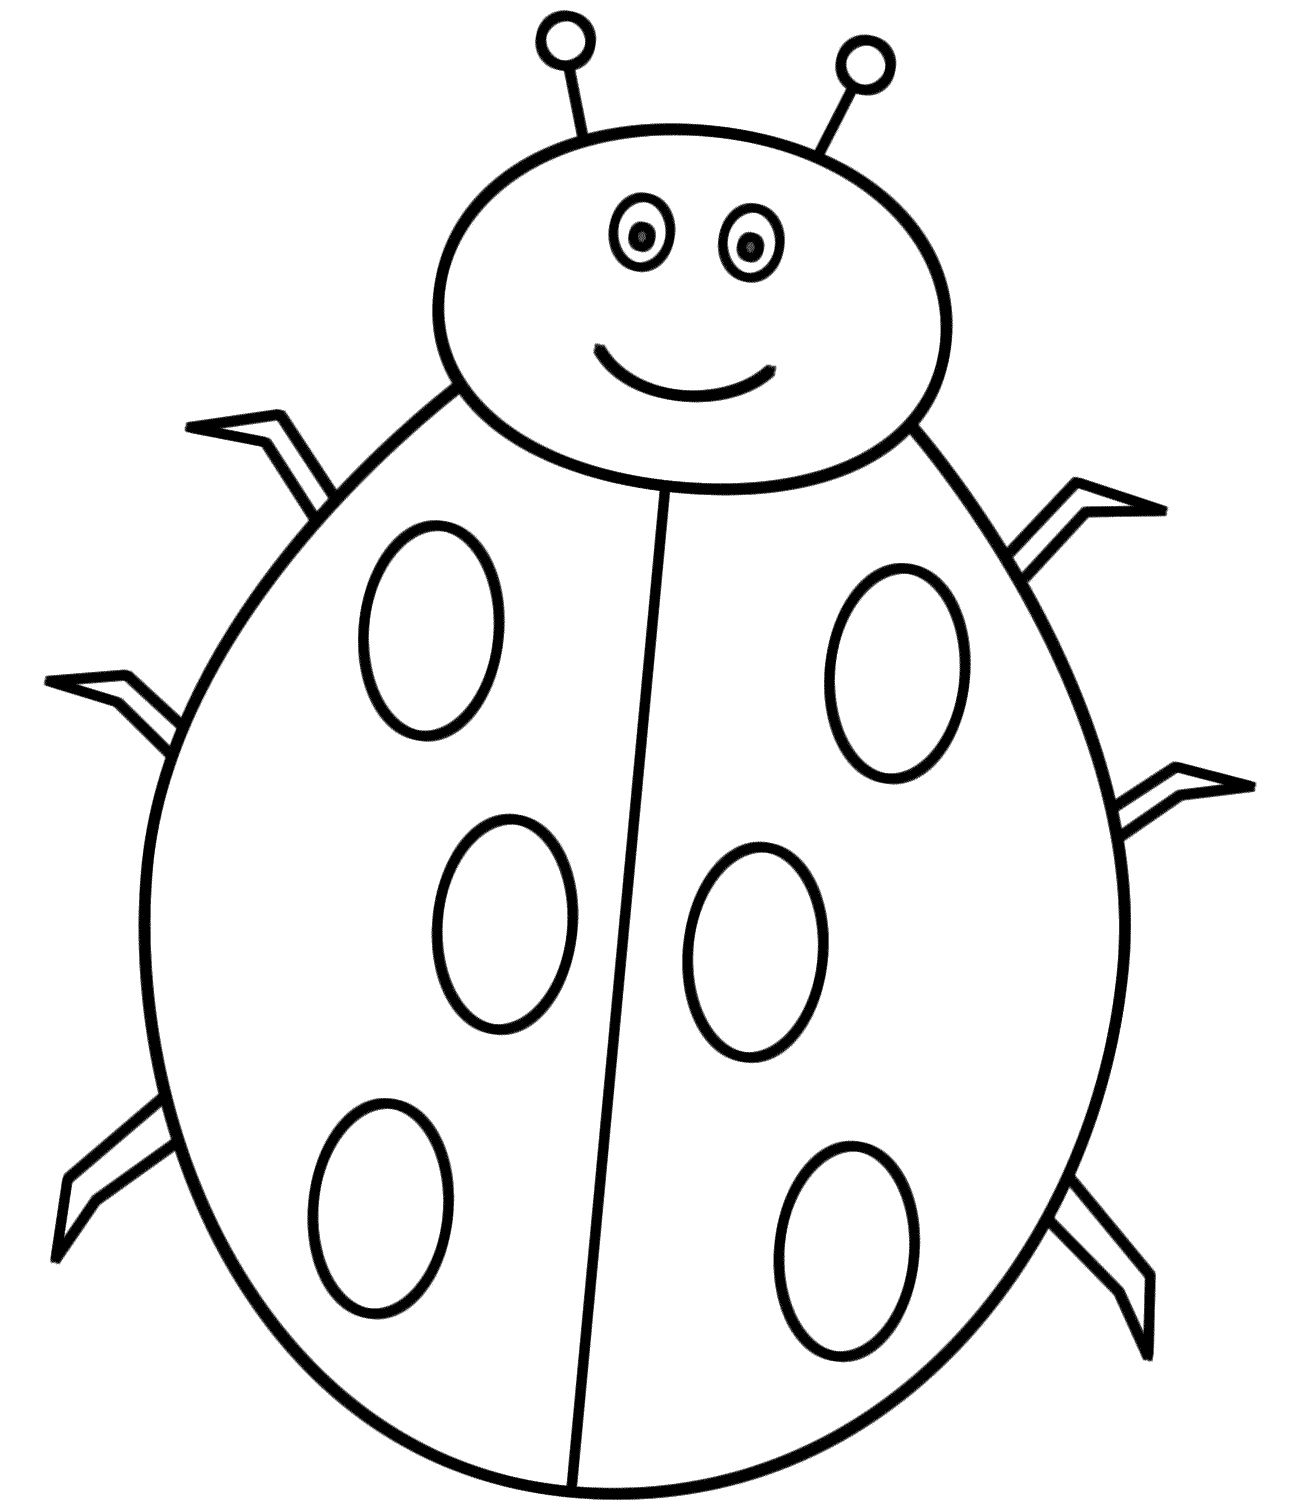 Coloring pages of ladybugs for kids - Lowercase L Printing Worksheet Trace 1 Print 1